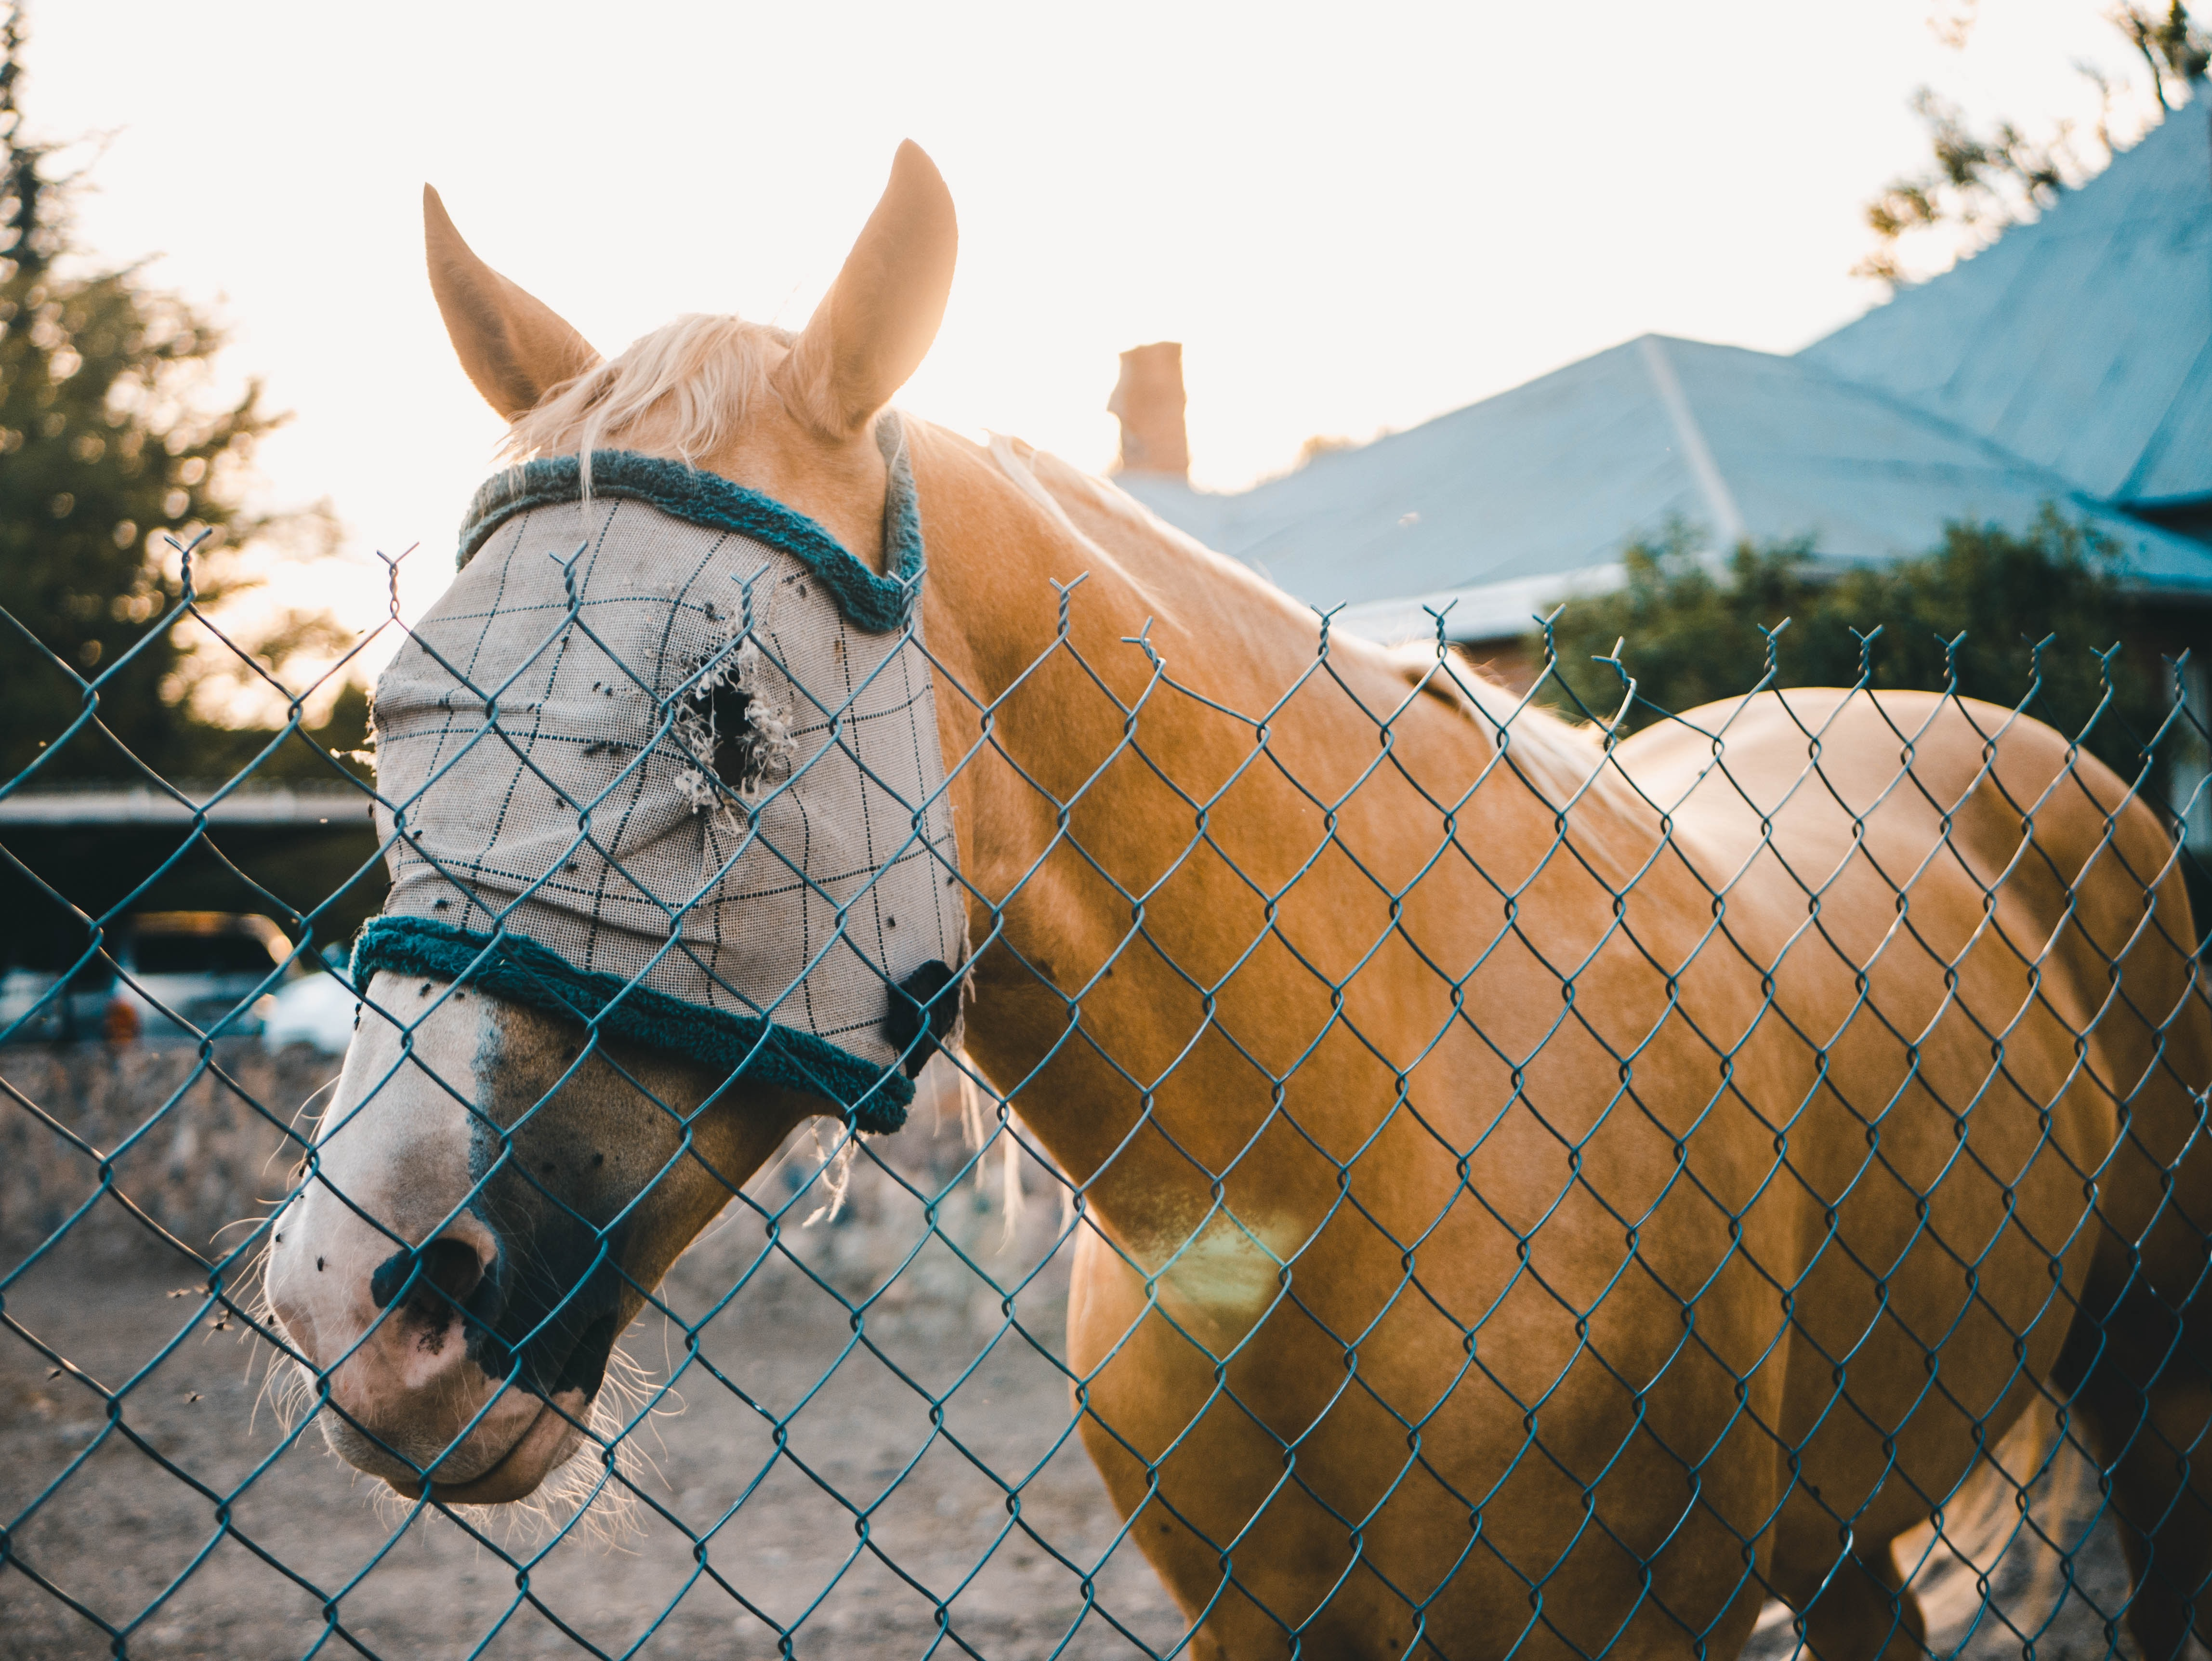 brown horse beside the chain link fence